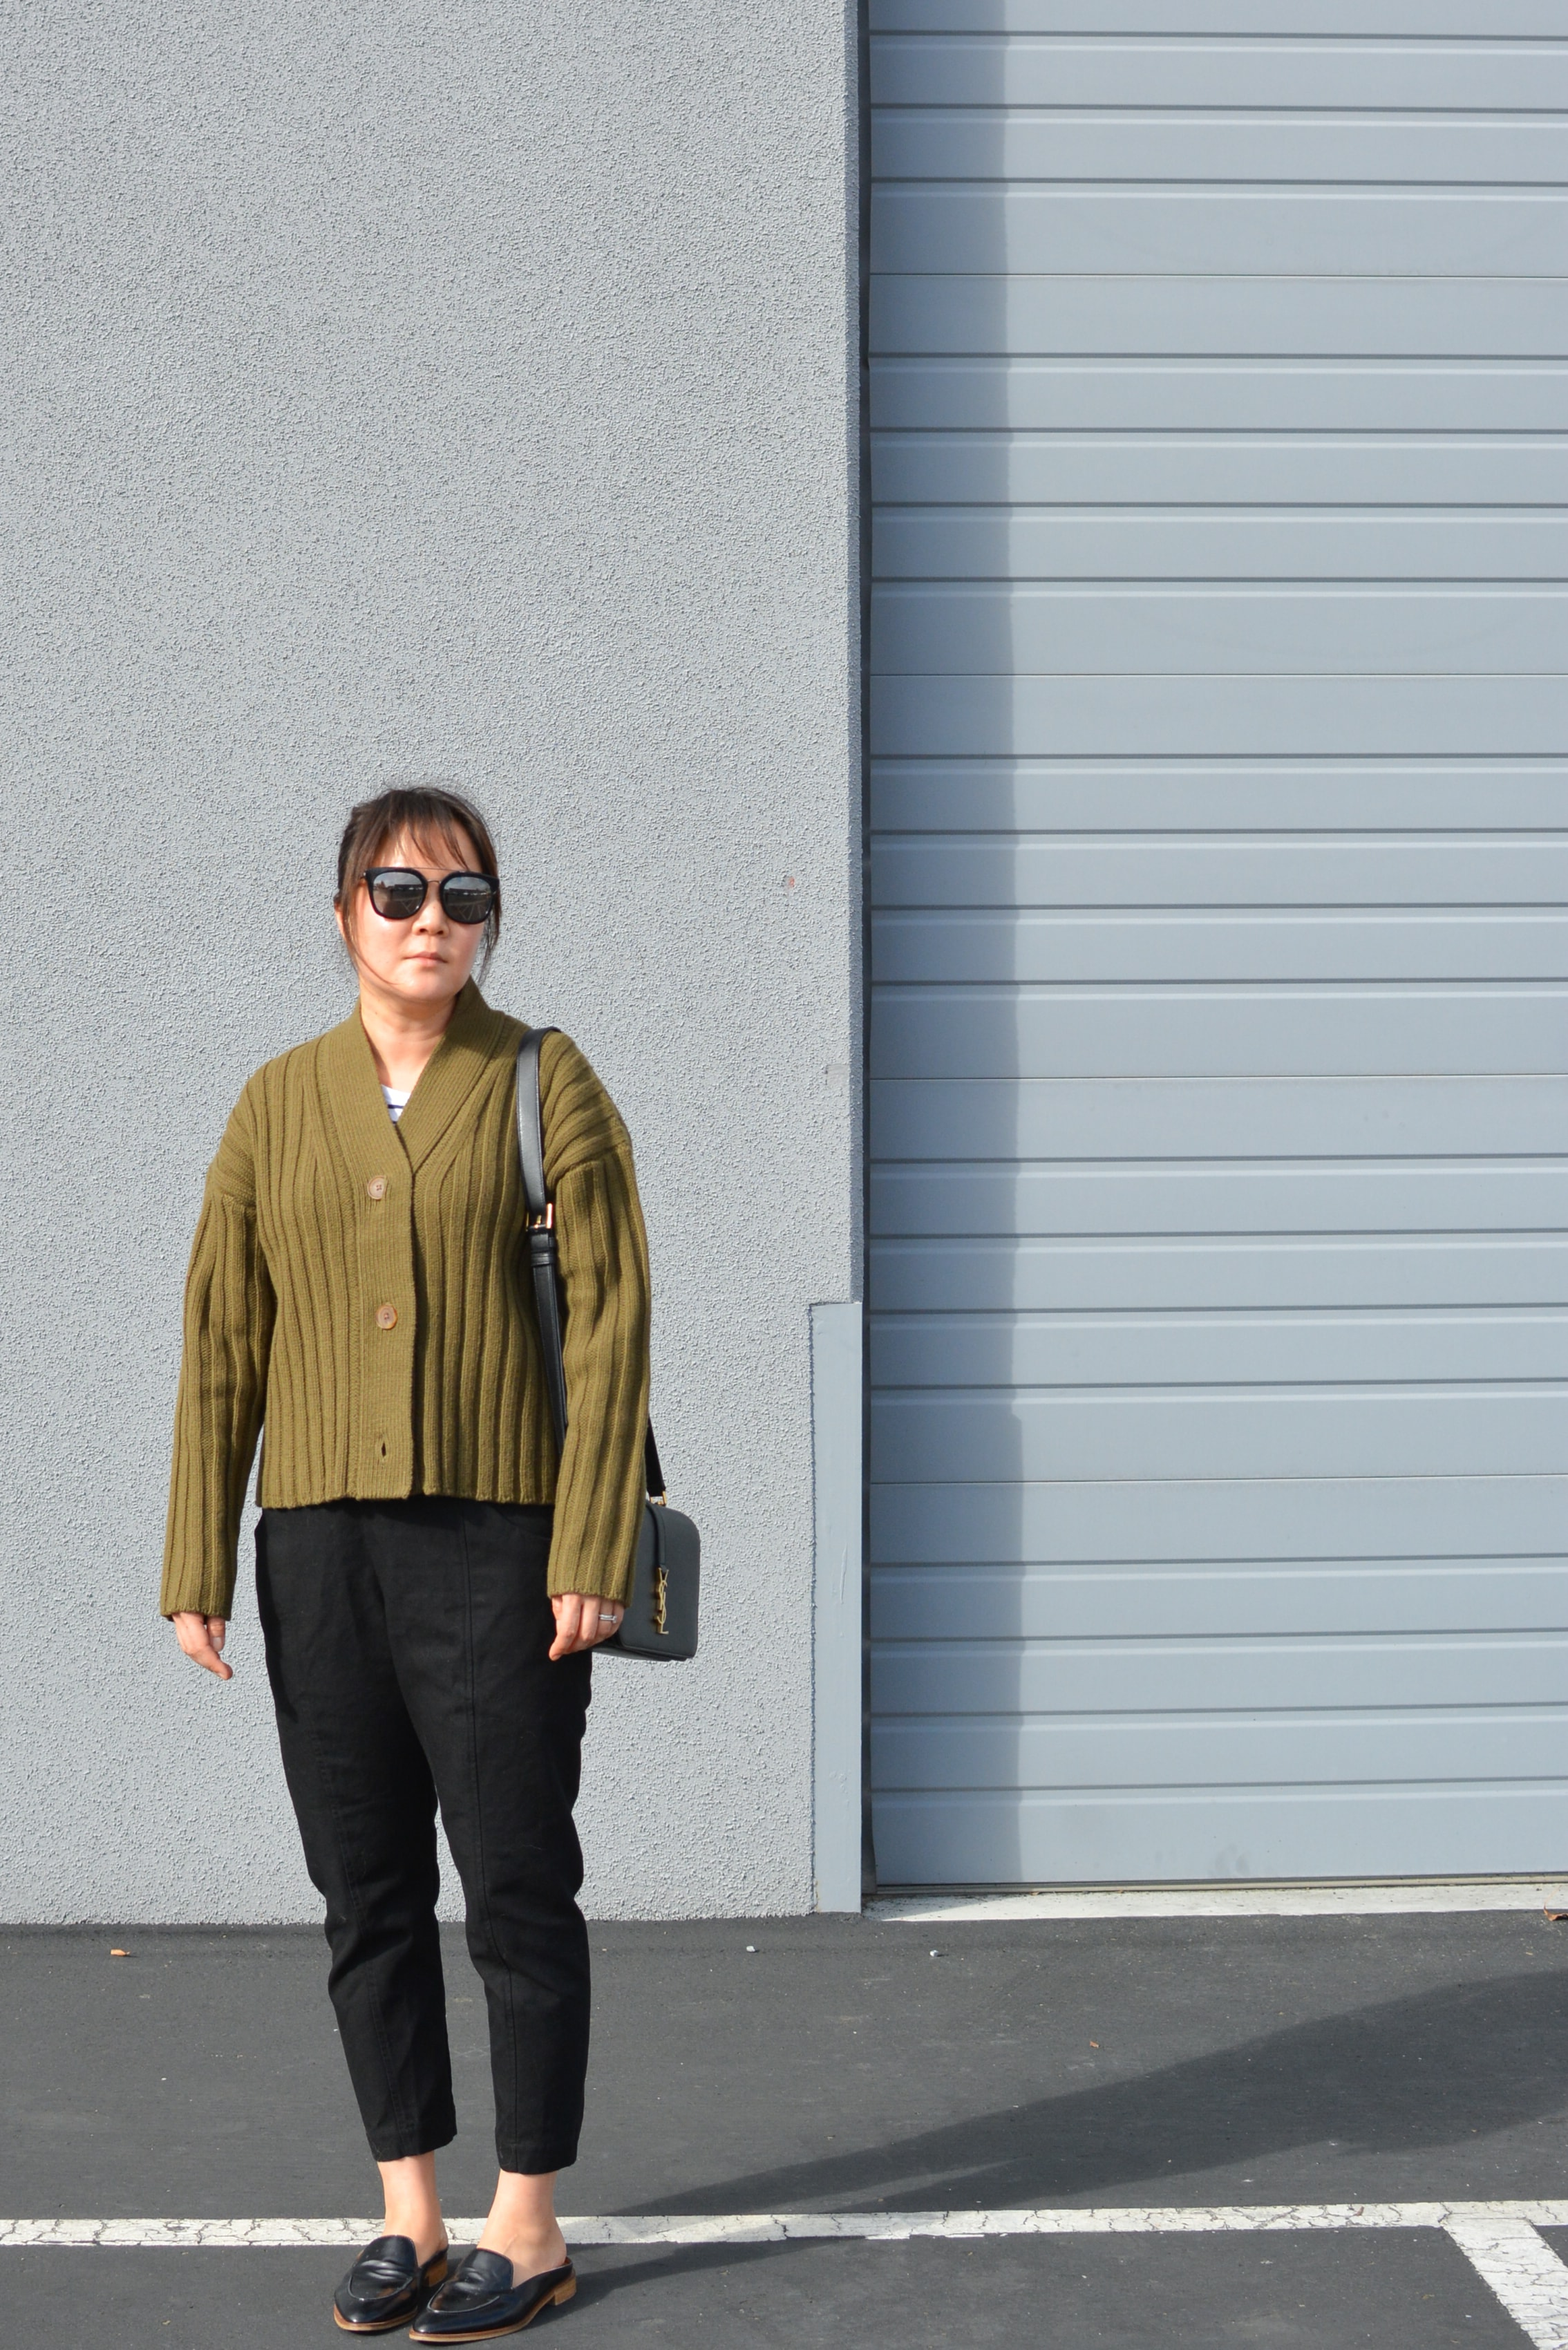 Everlane review the Wool-Cashmere Rib V-Neck Cardigan (6 of 6)-min (1).jpg